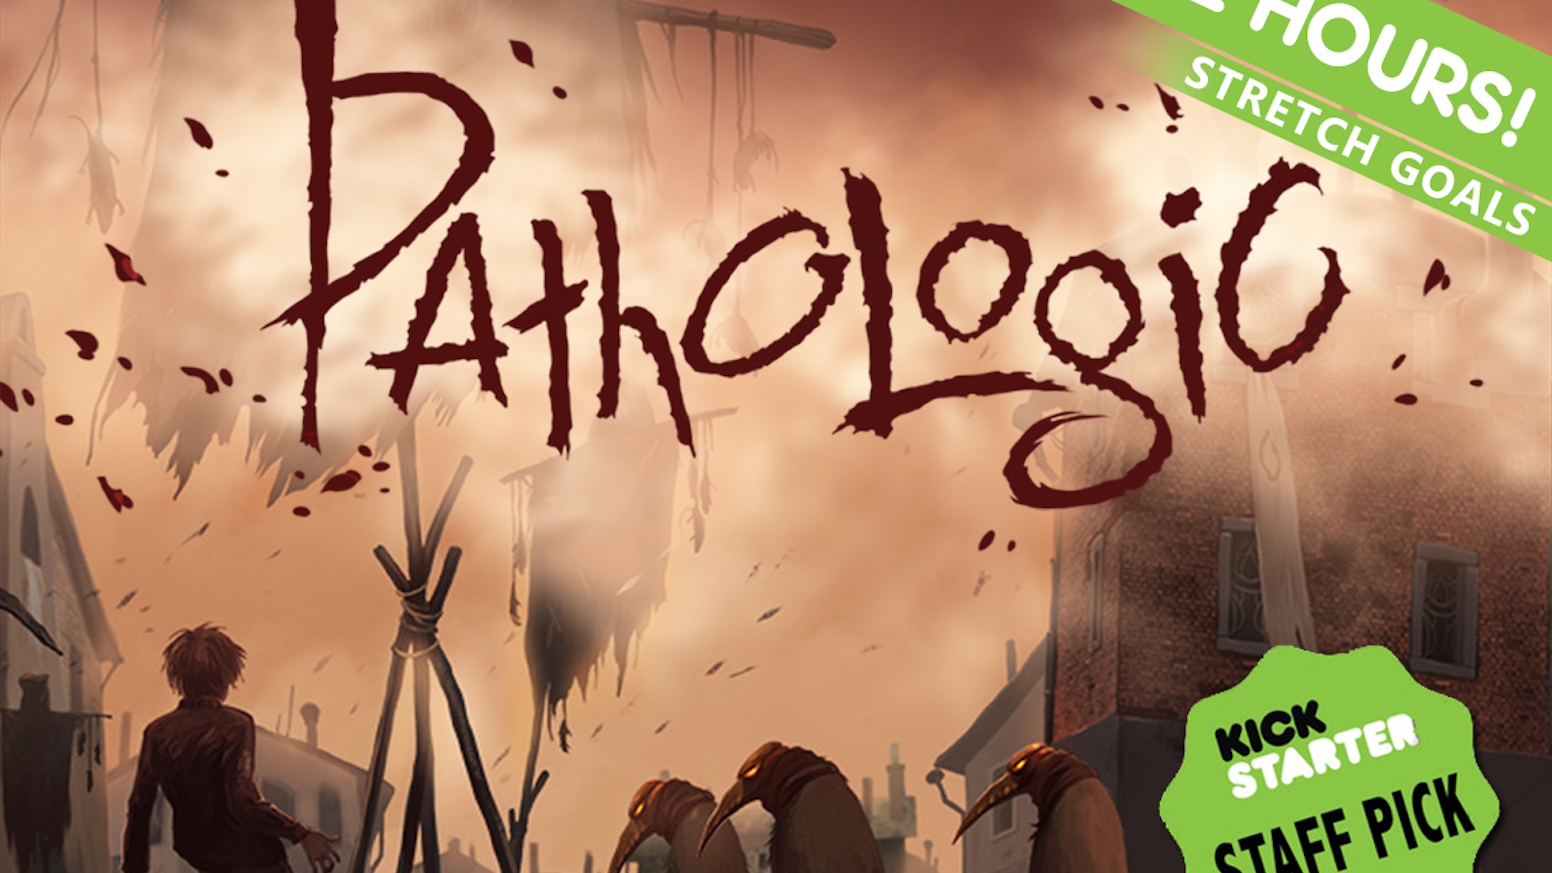 12 days in a town devoured by plague. It's an enemy you can't kill. It's a game where you can't save everyone